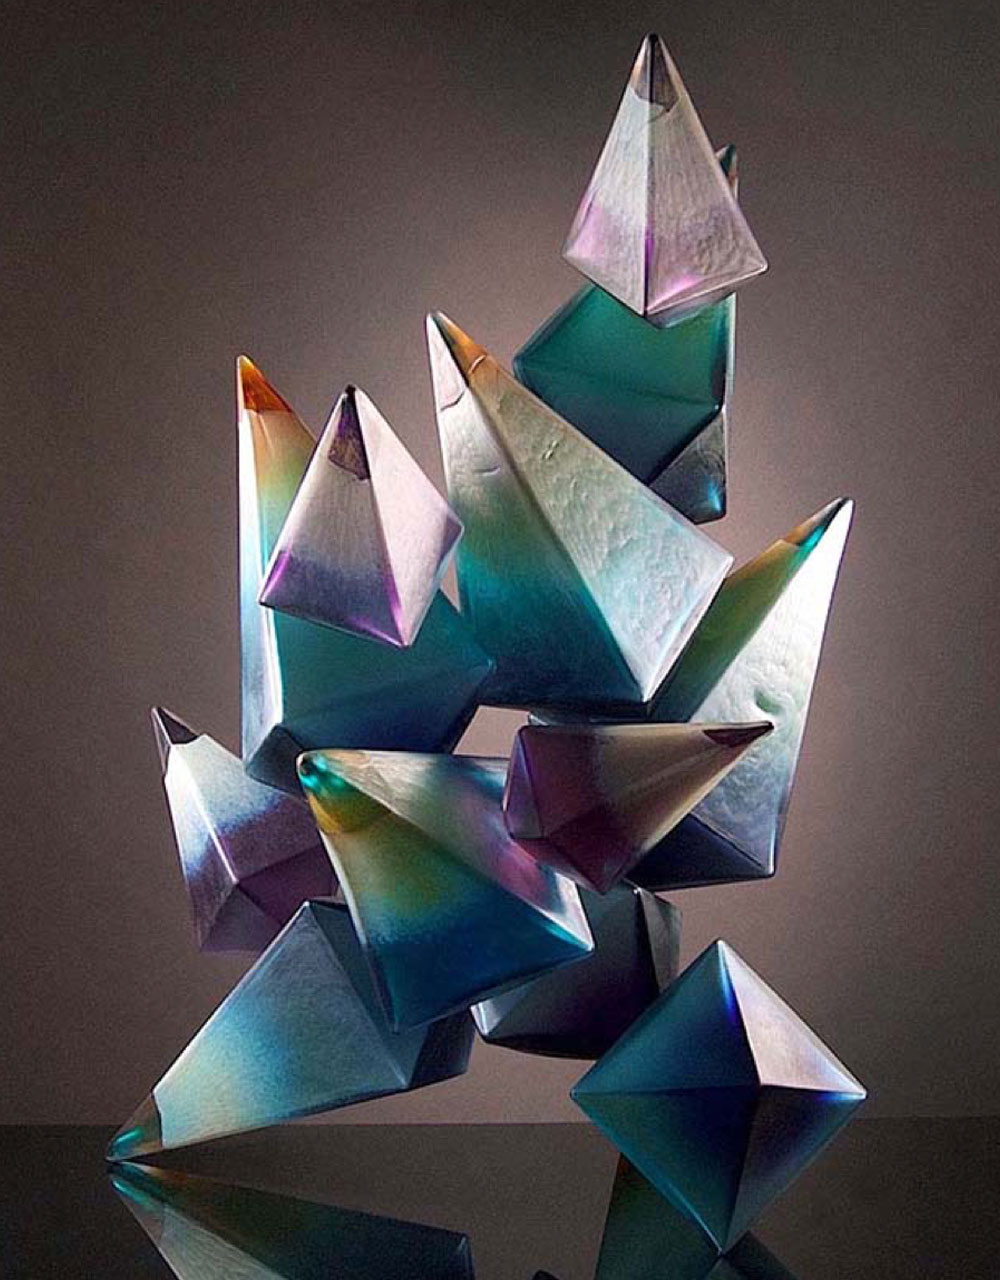 Richard Royal, glass artist